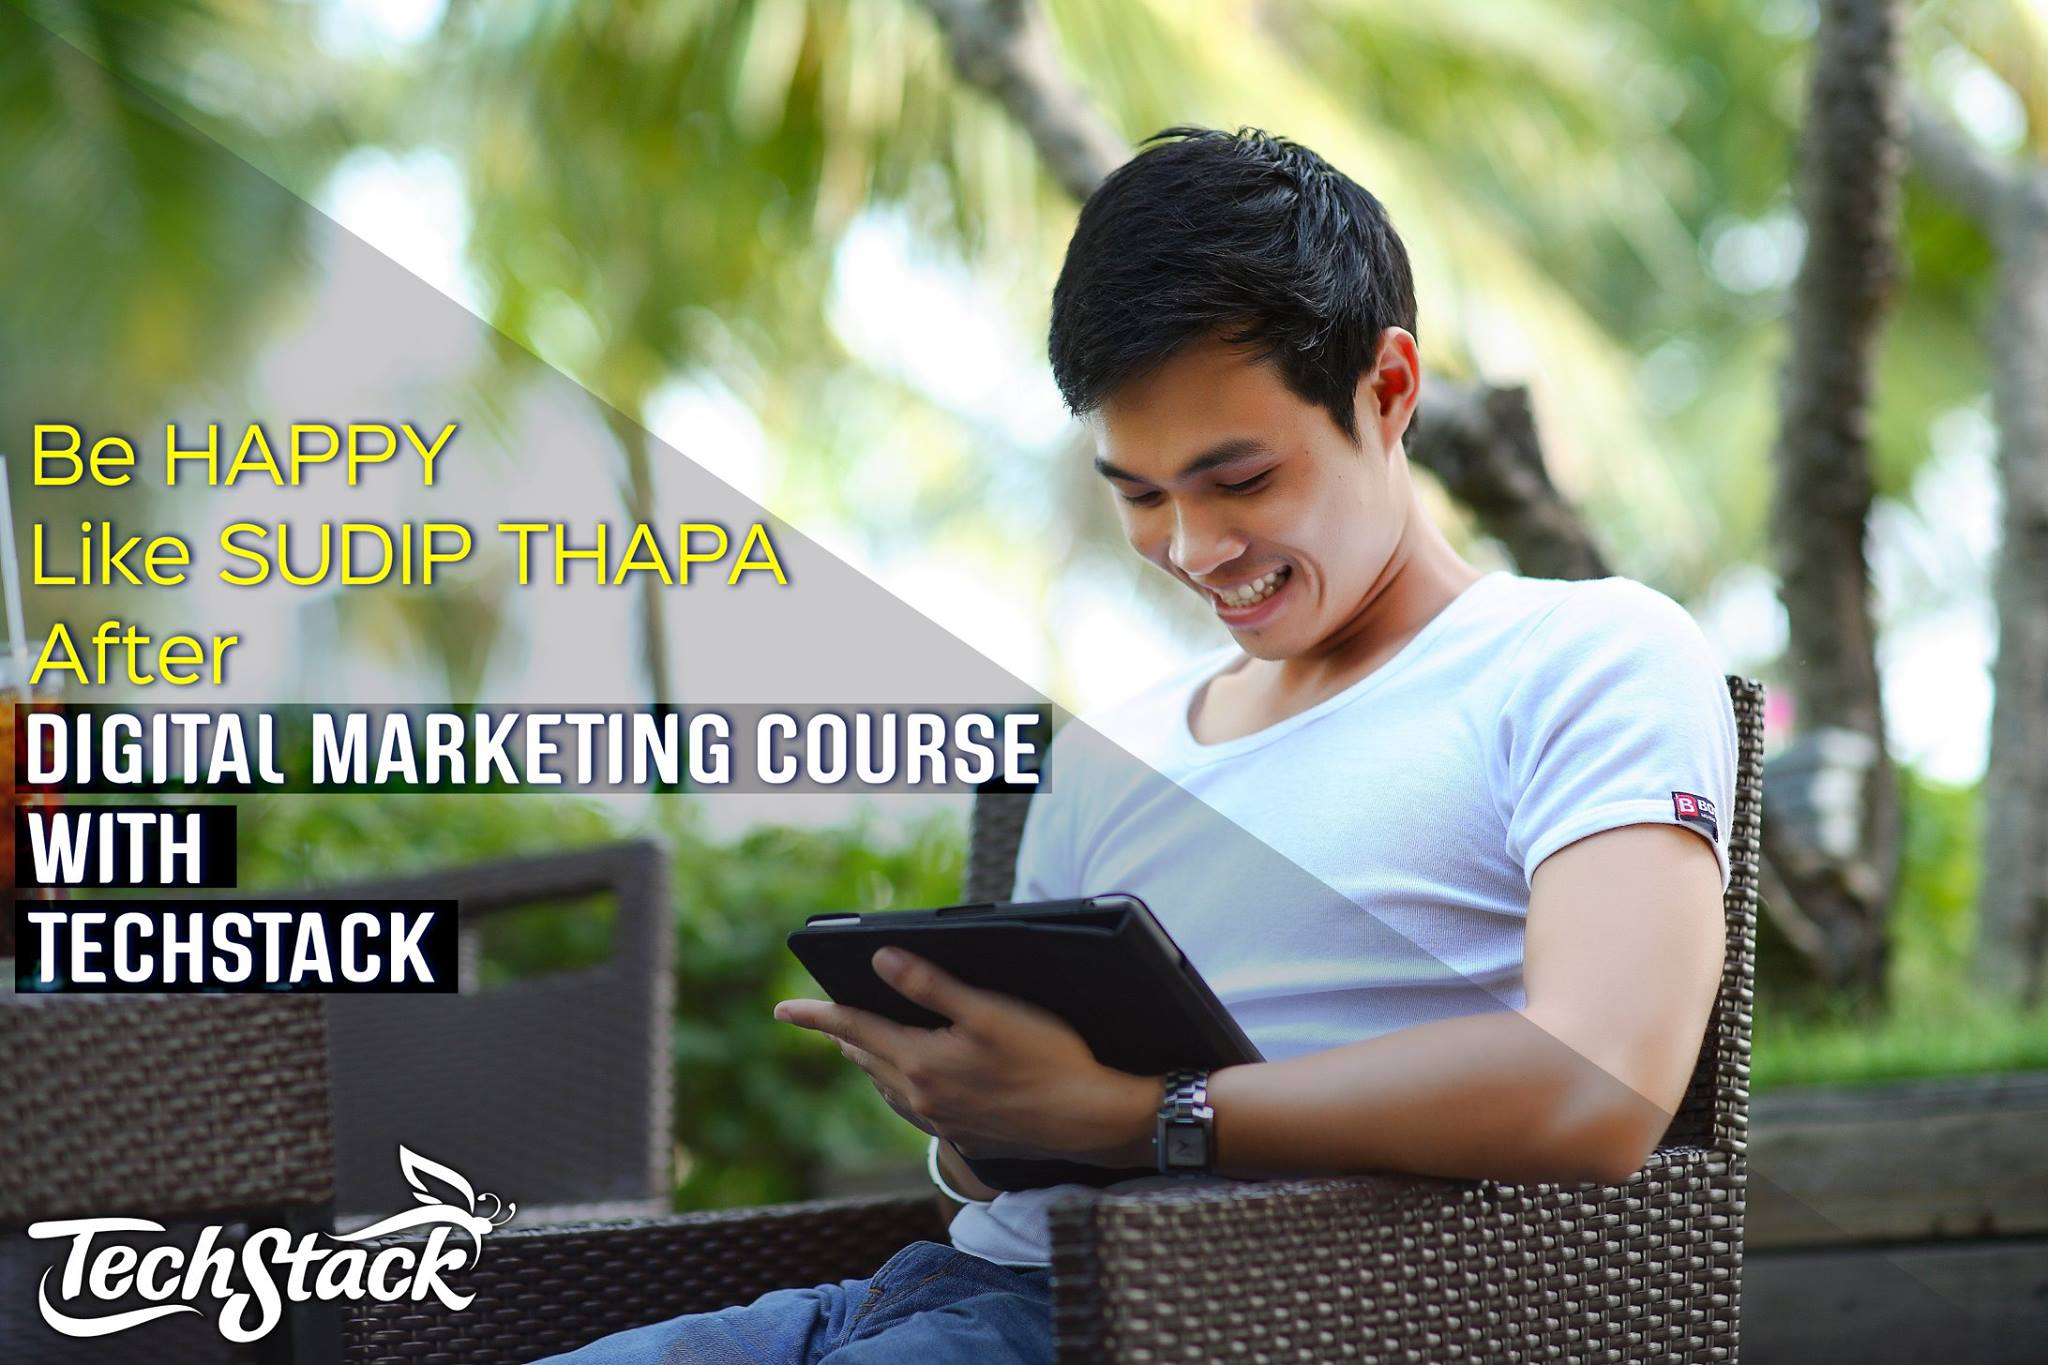 India's First Corporate Technologist Digital Marketing Course Announced by Techstack